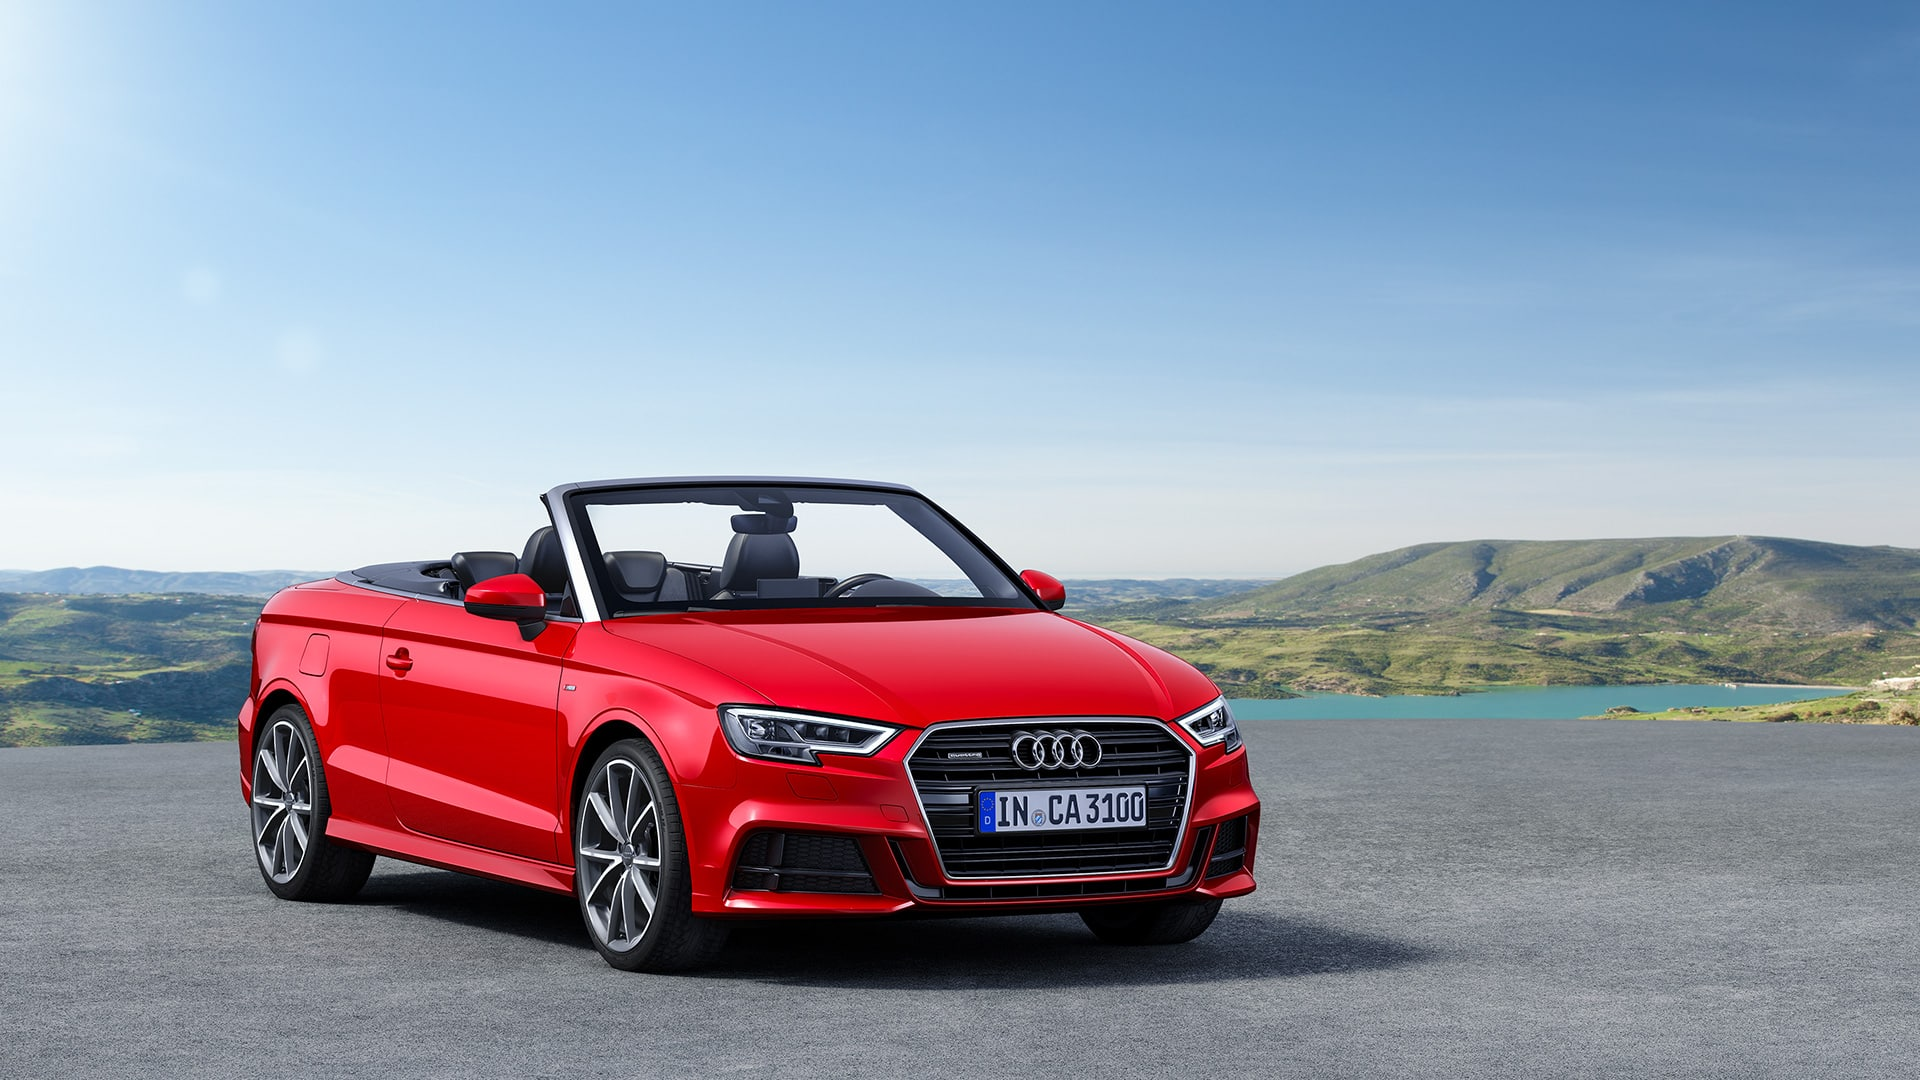 audi a3 cabriolet open air freedom audi australia audi australia official website luxury. Black Bedroom Furniture Sets. Home Design Ideas